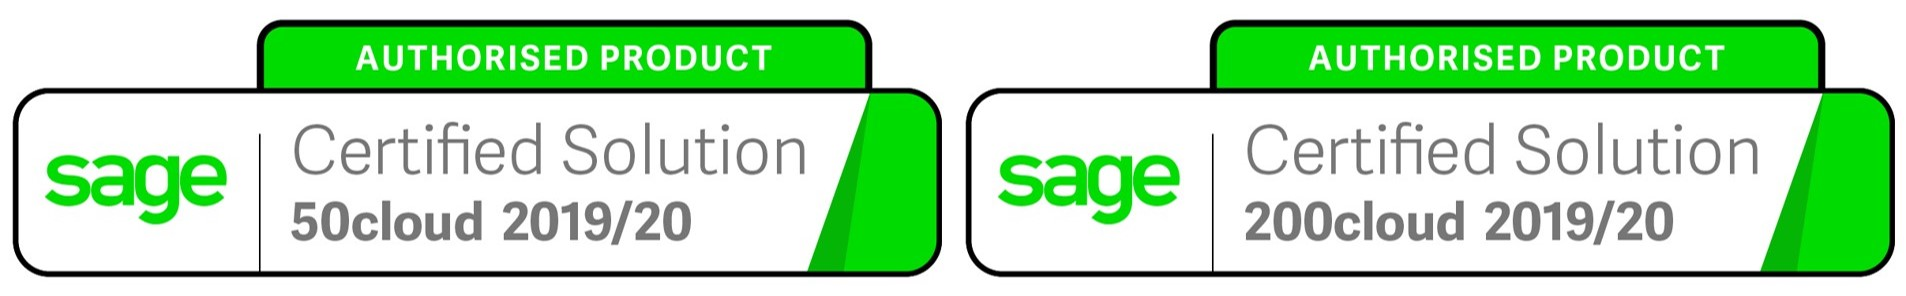 Click here to find out more about this Sage Certified Document Management Solution